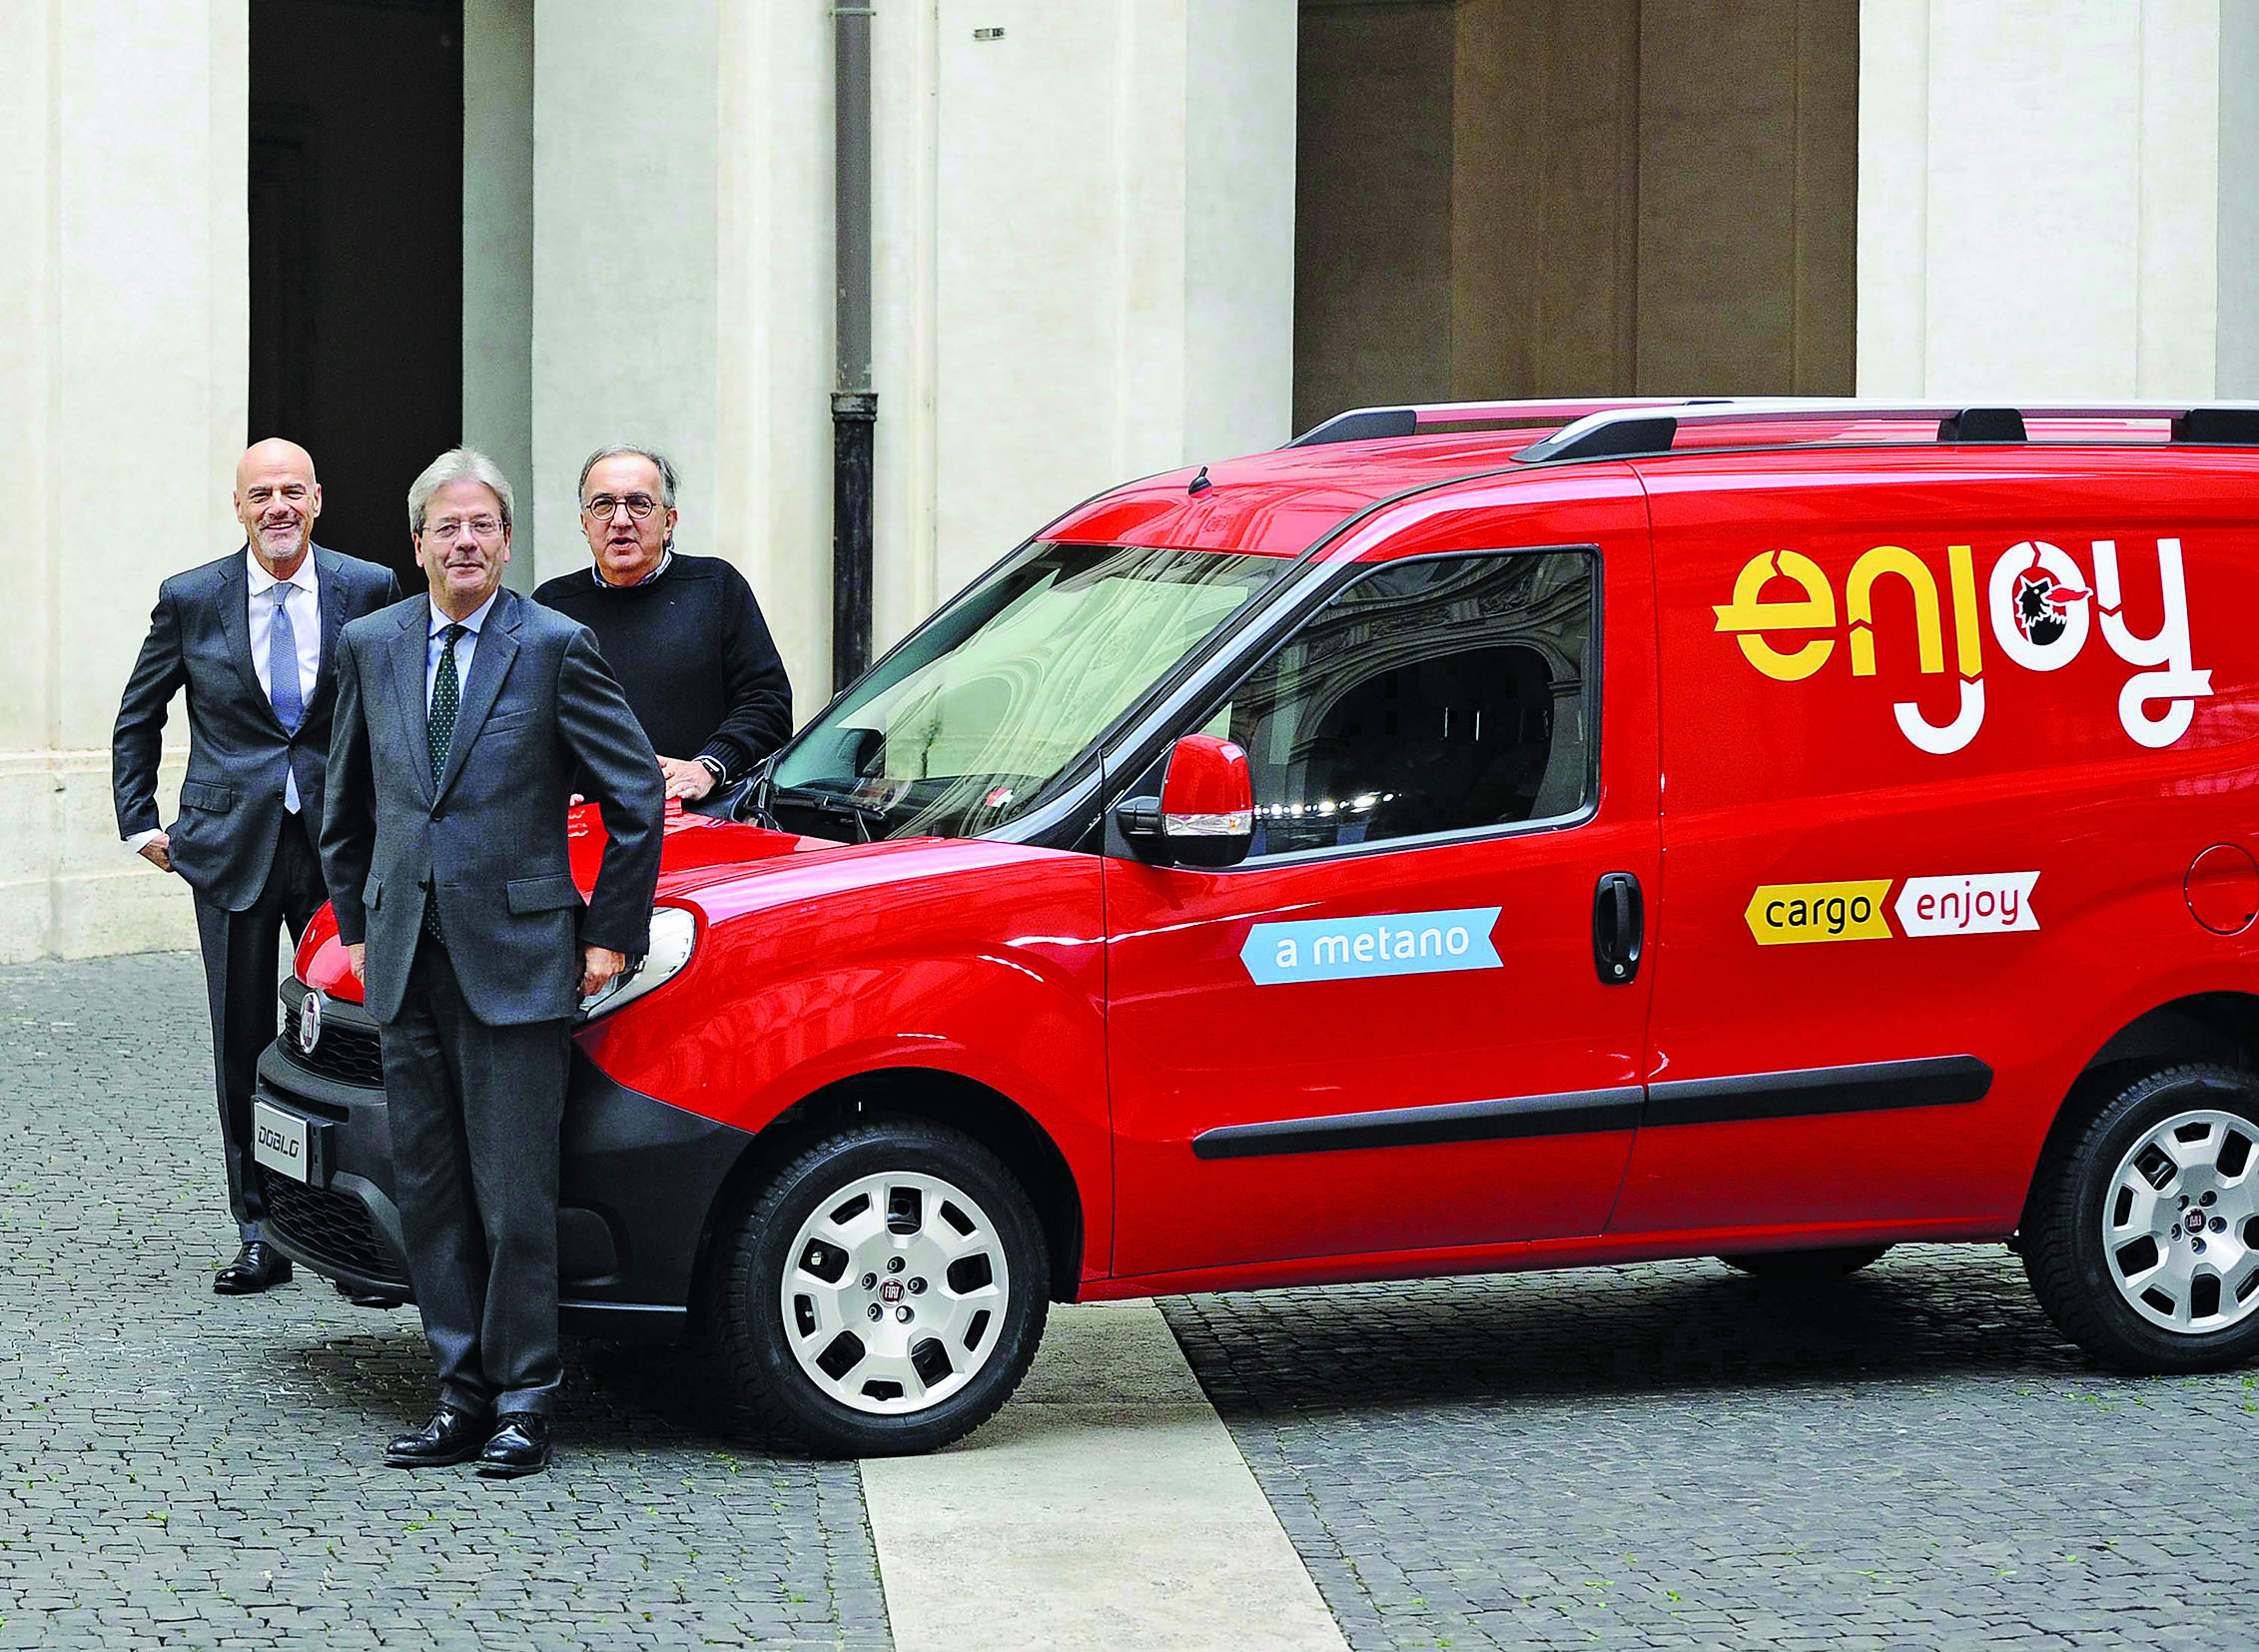 Eni and Fca sign an agreement in order to reduce emissions